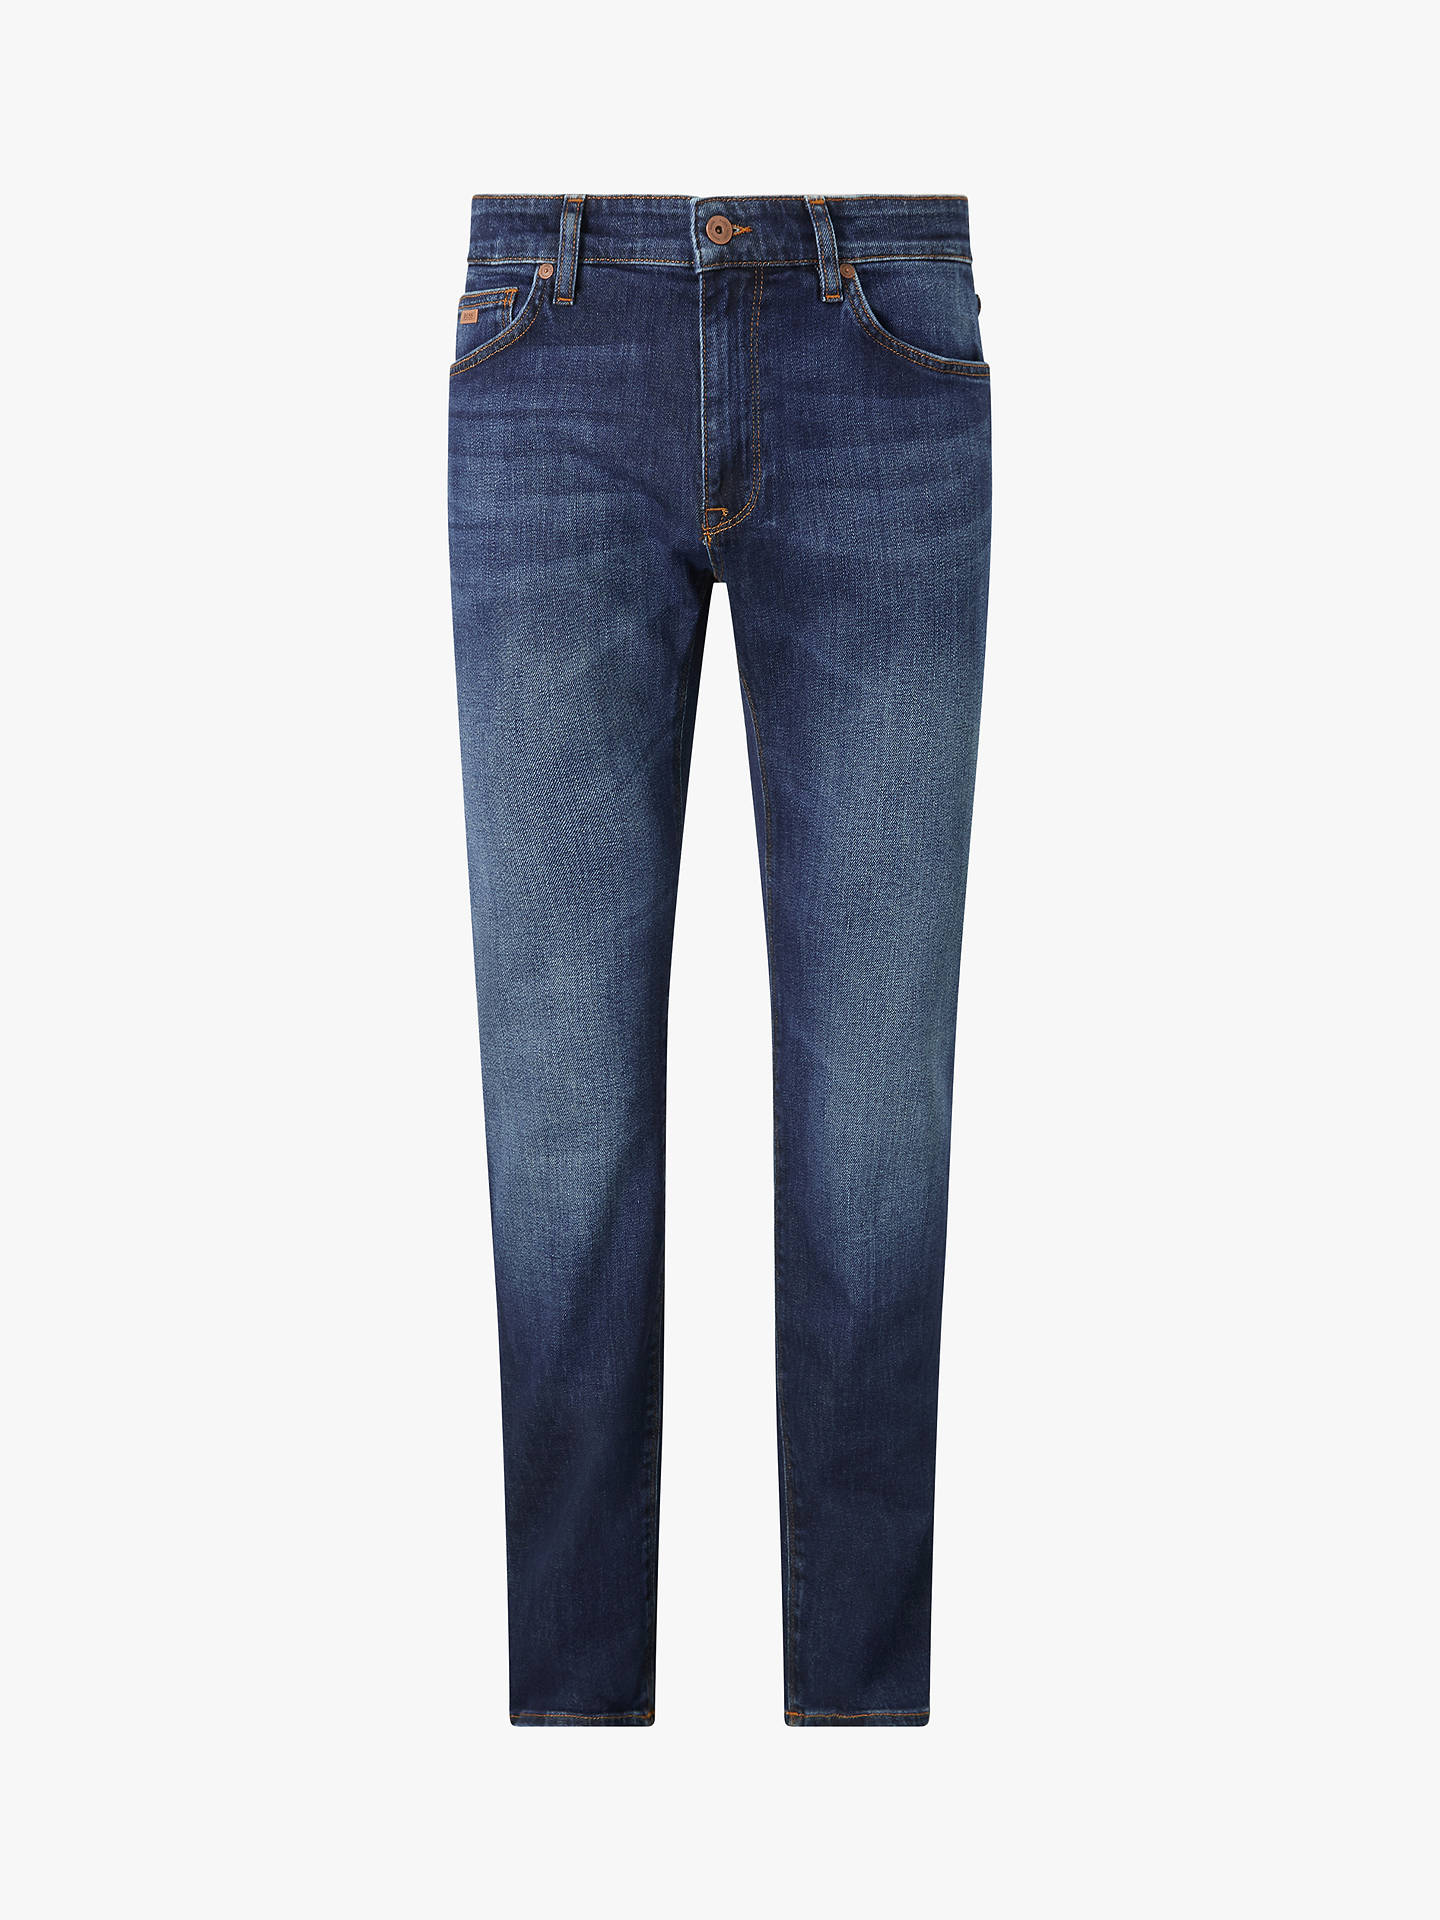 BuyBOSS Maine3 Jeans, Medium Blue, 30R Online at johnlewis.com